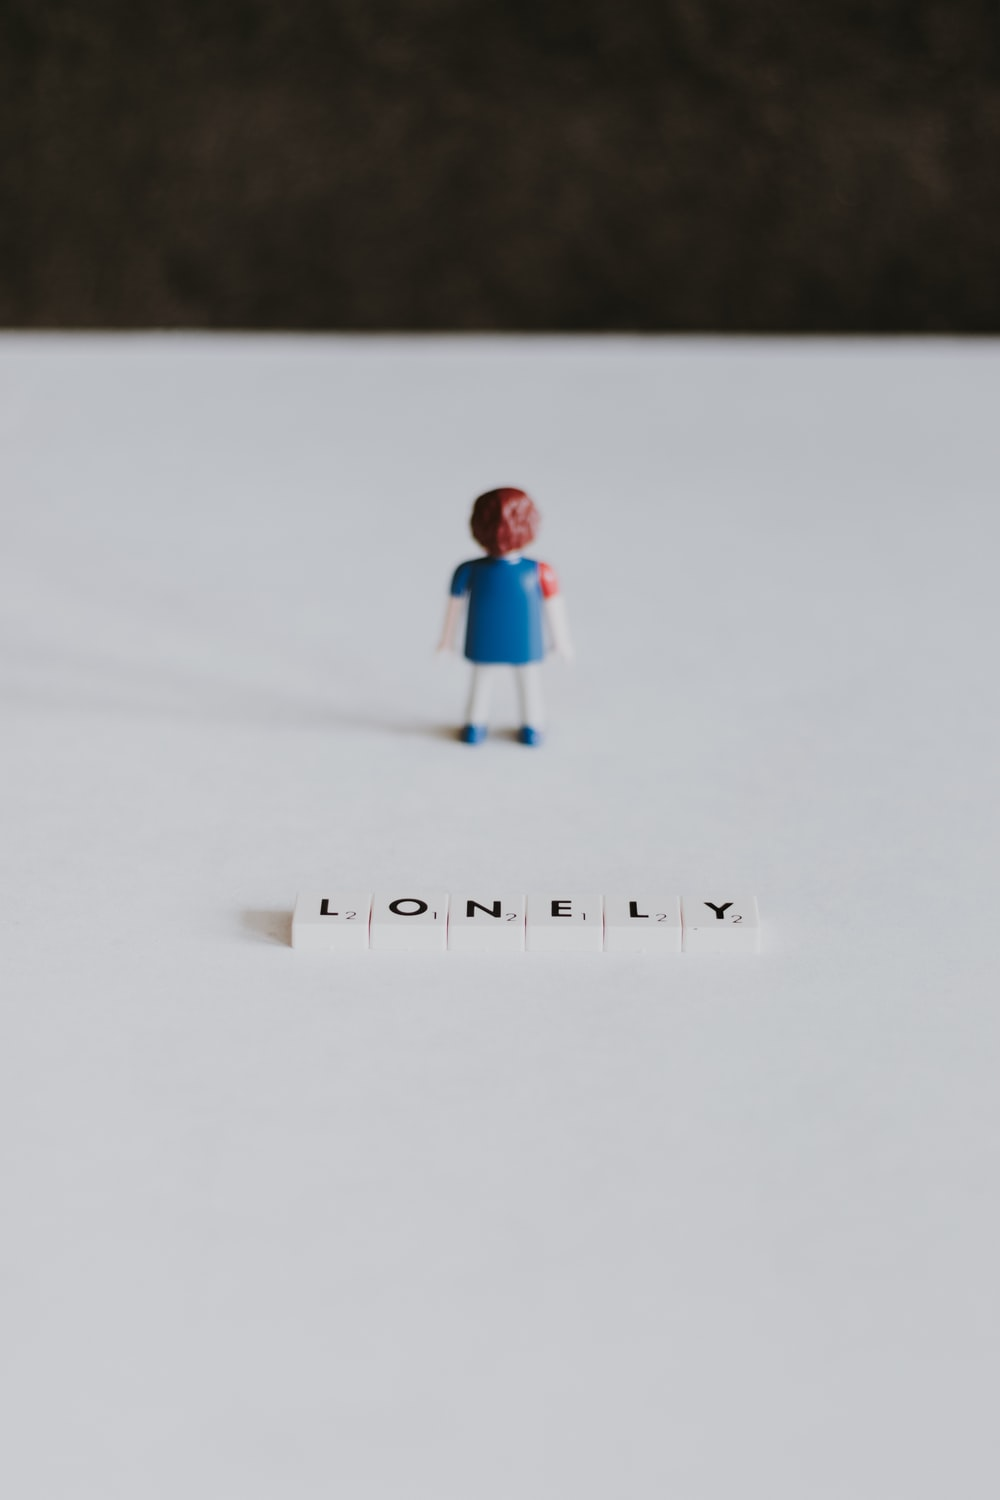 child in teal jacket and blue pants walking on snow covered ground during daytime